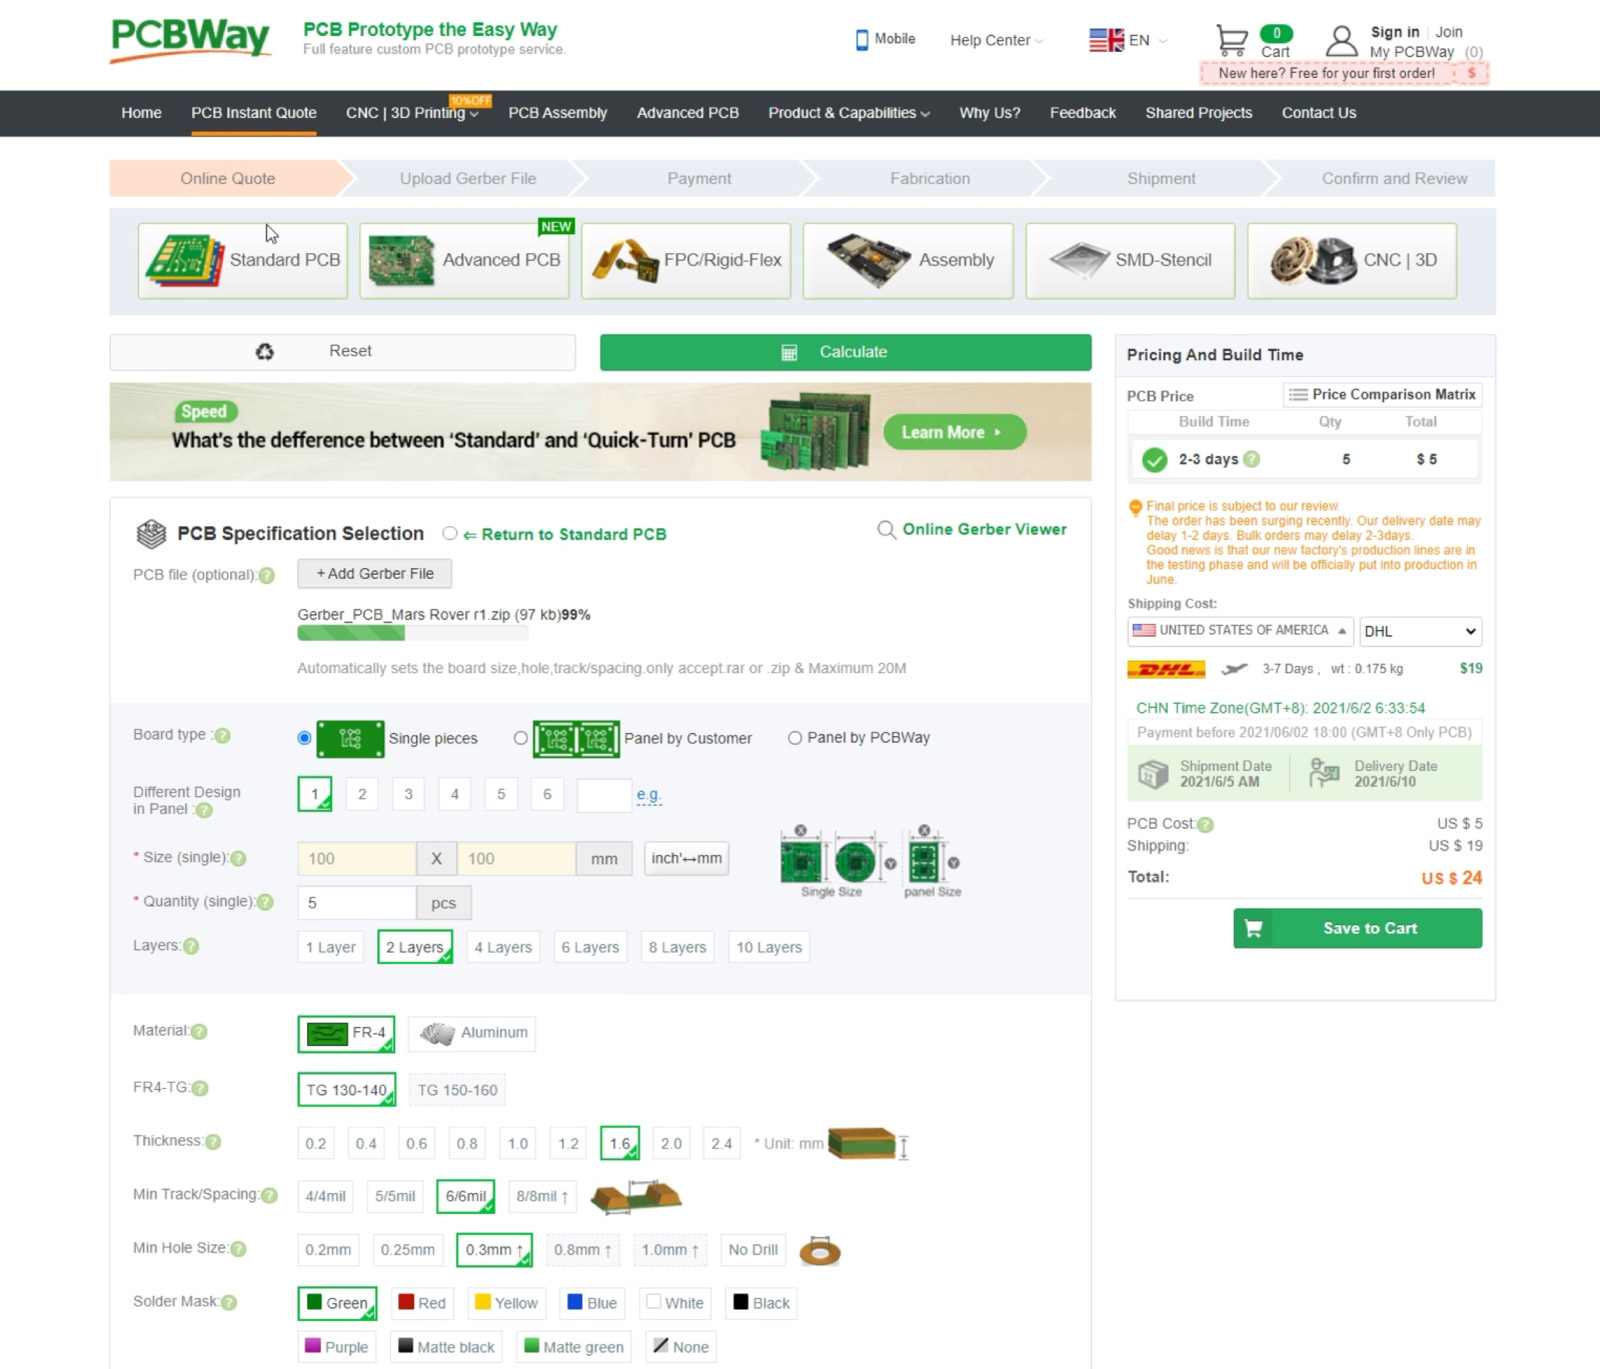 Ordering the custom PCB for the Rover from PCBWay